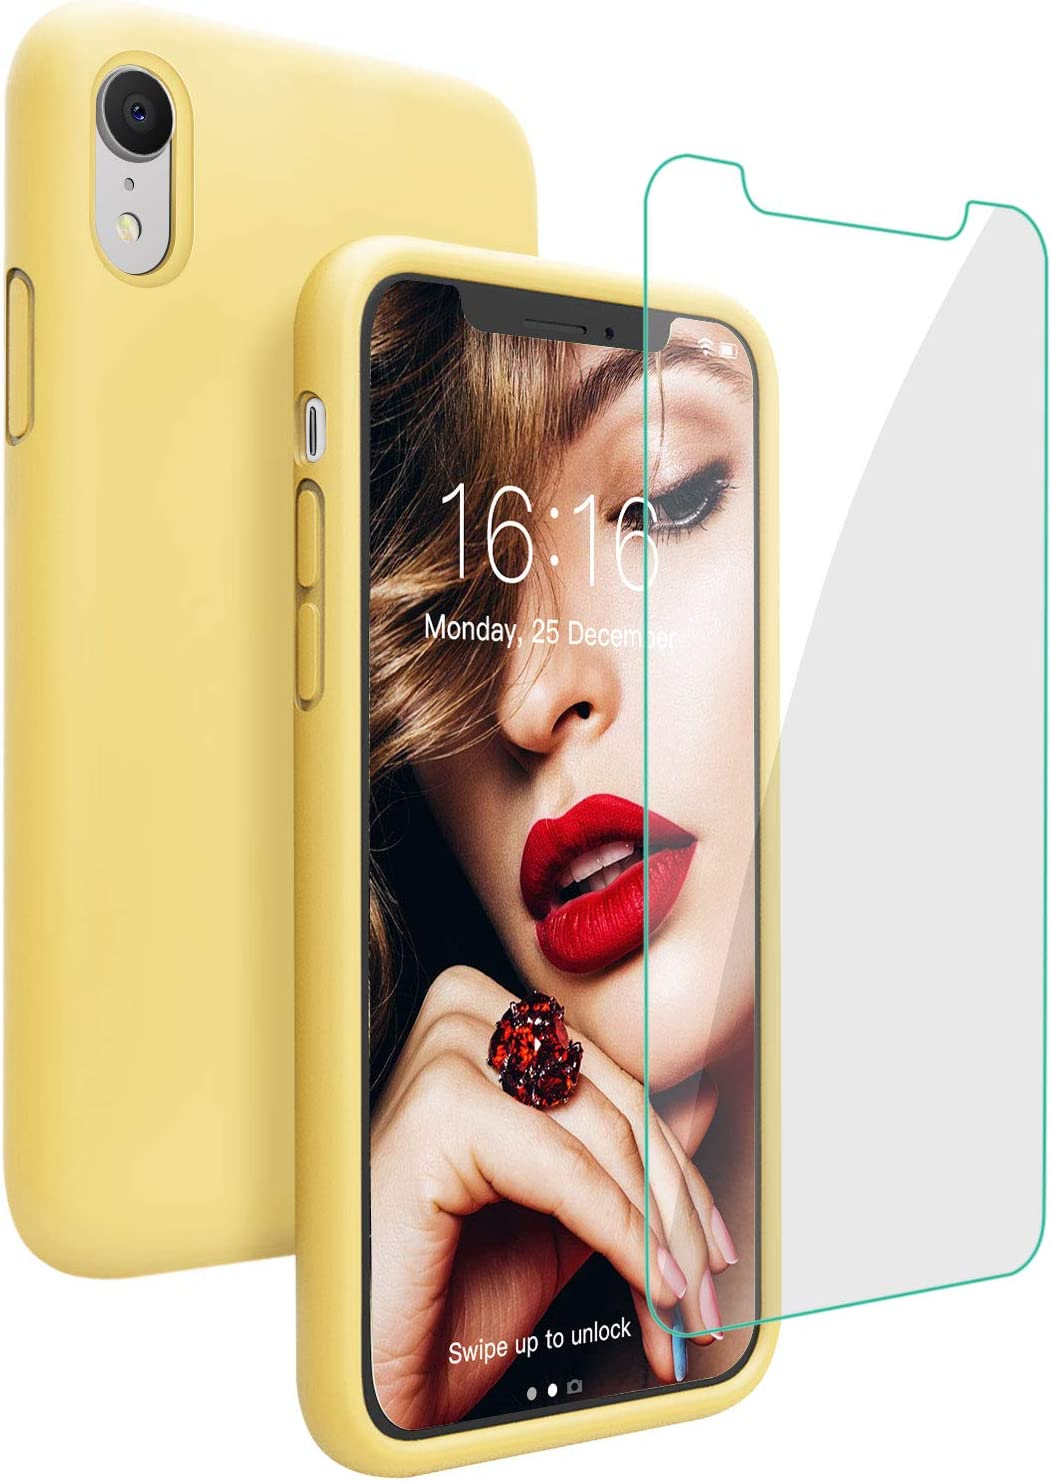 JASBON Case for iPhone XR, Soft Liquid Silicone iPhone XR Case with Tempered Glass Cover for iPhone XR-Yellow